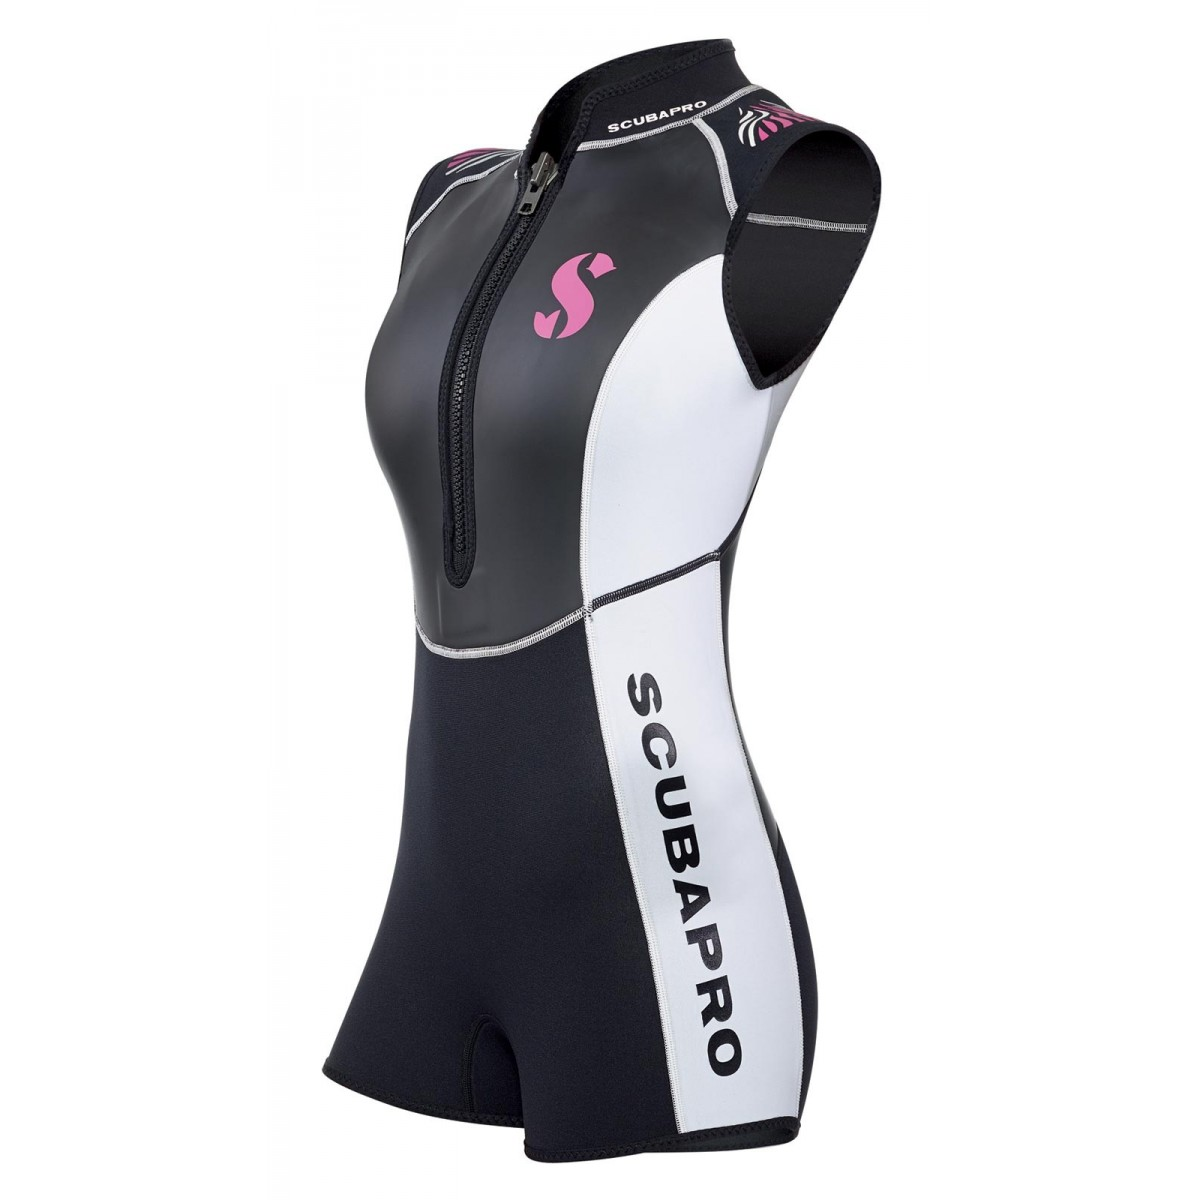 Scubapro Women's Hybrid Shorty 2mm